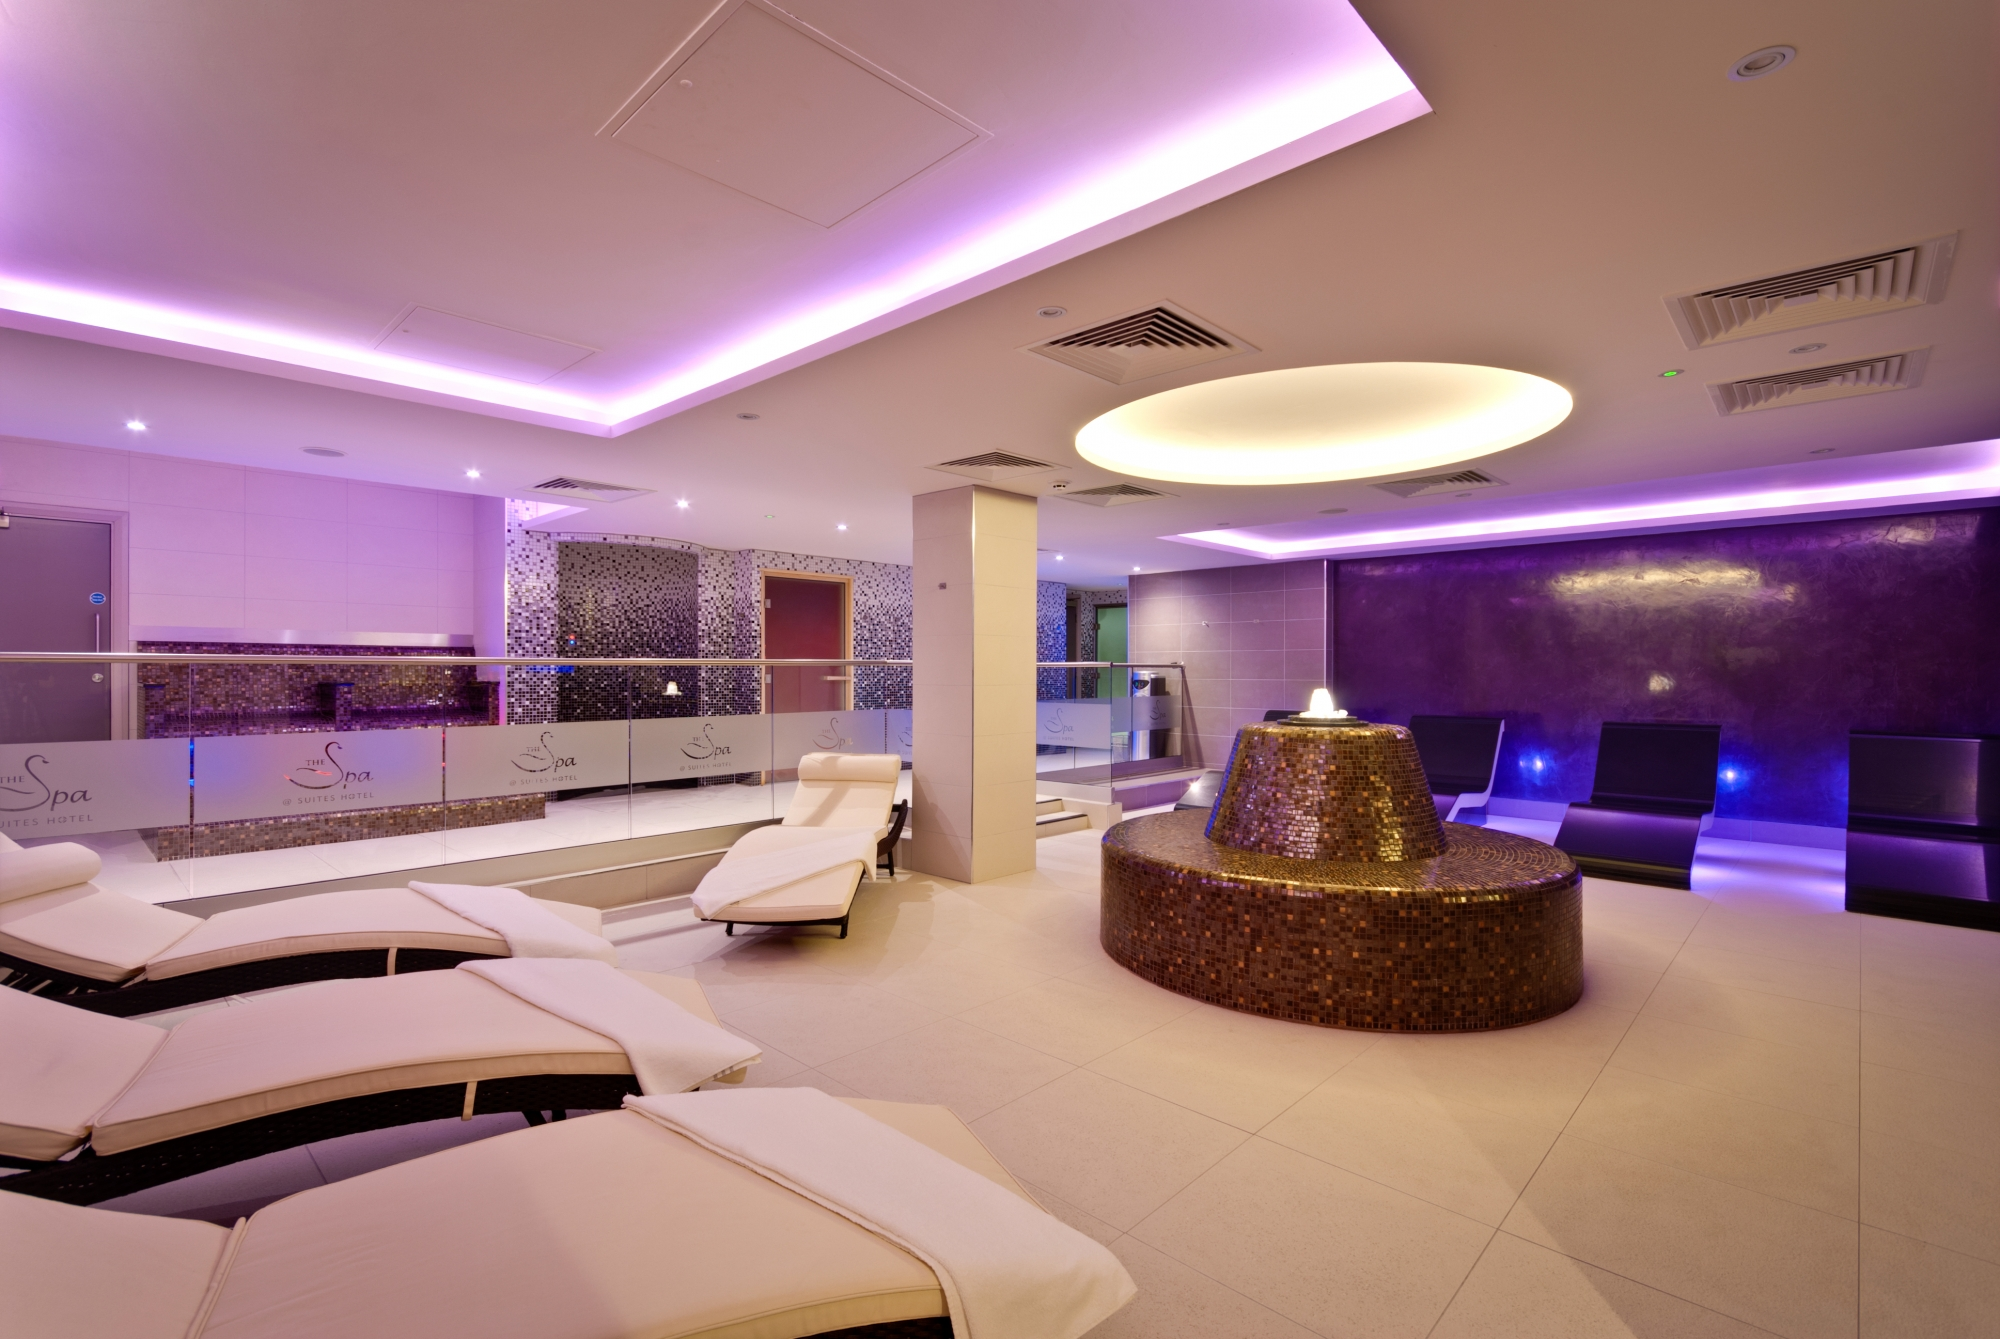 spa day deals for 2 liverpool